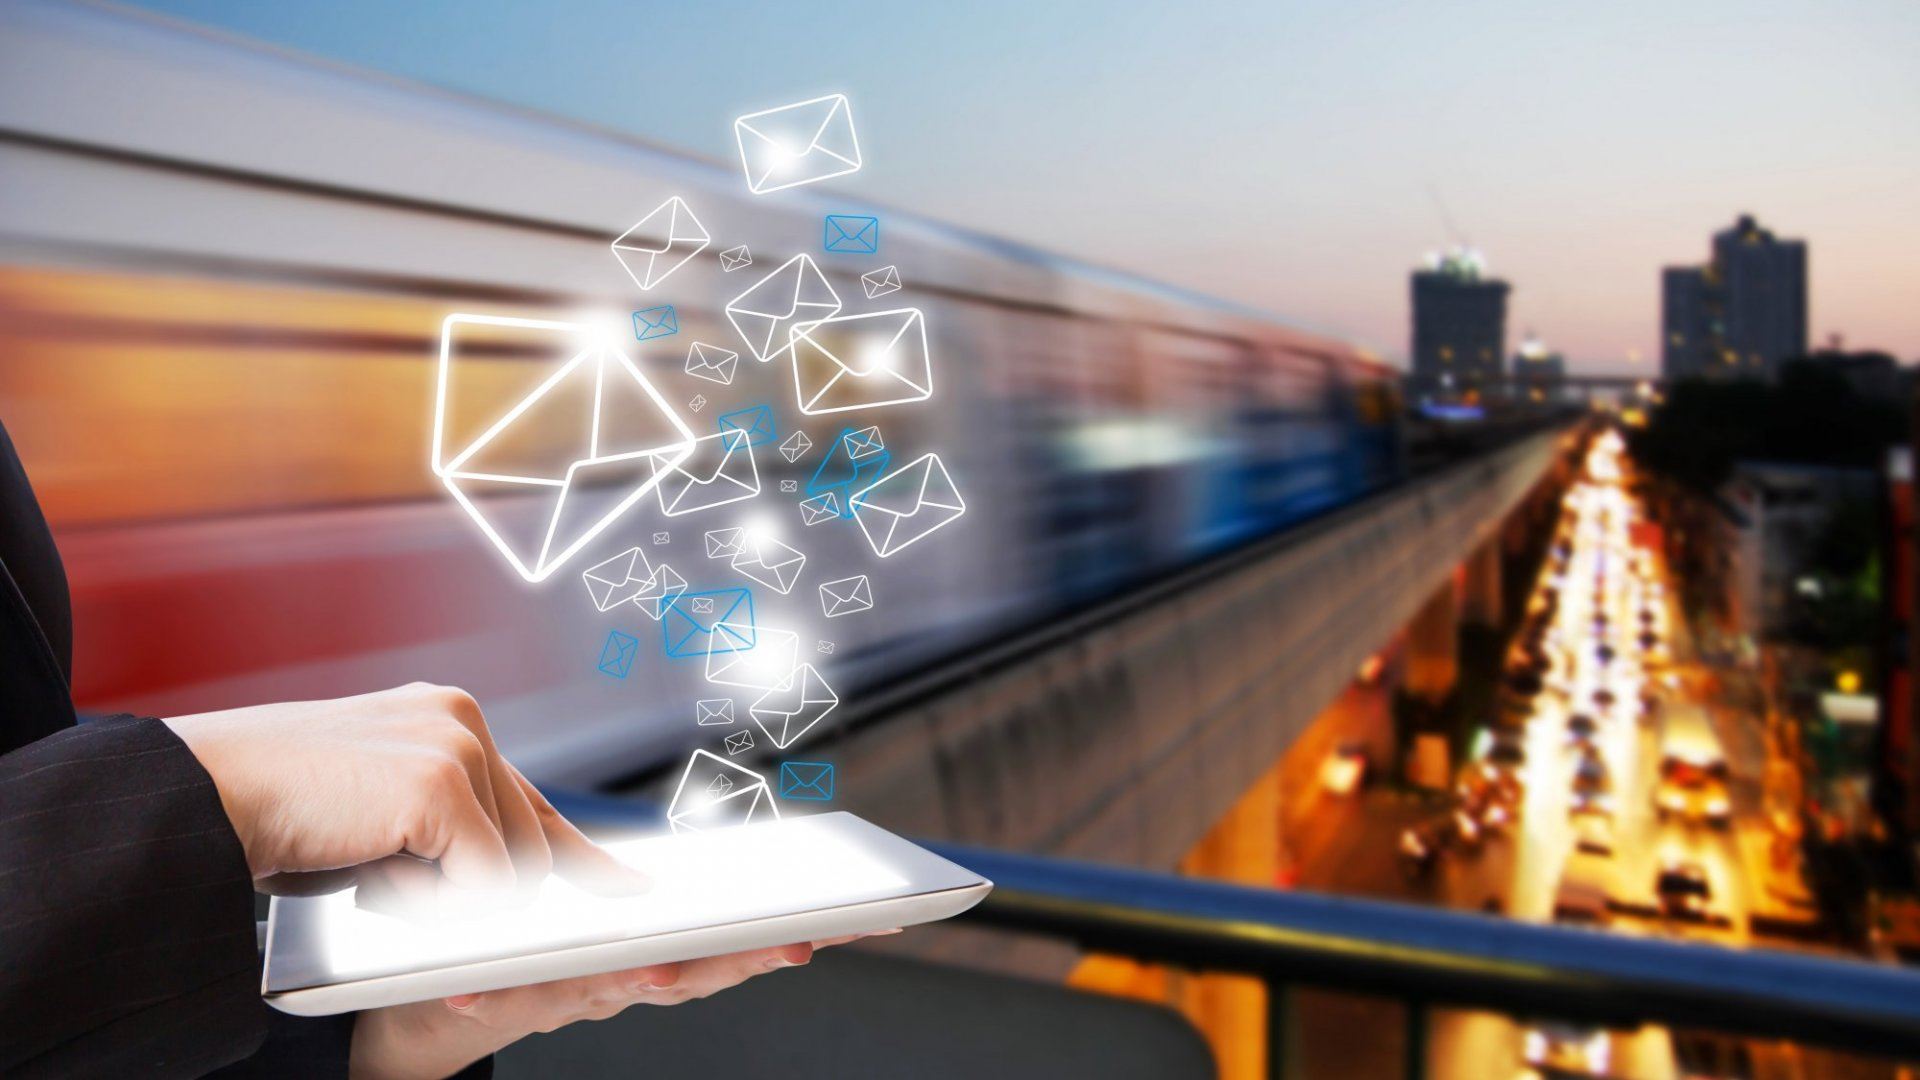 4 Ways to Know If Your Email Marketing Campaign is Succeeding